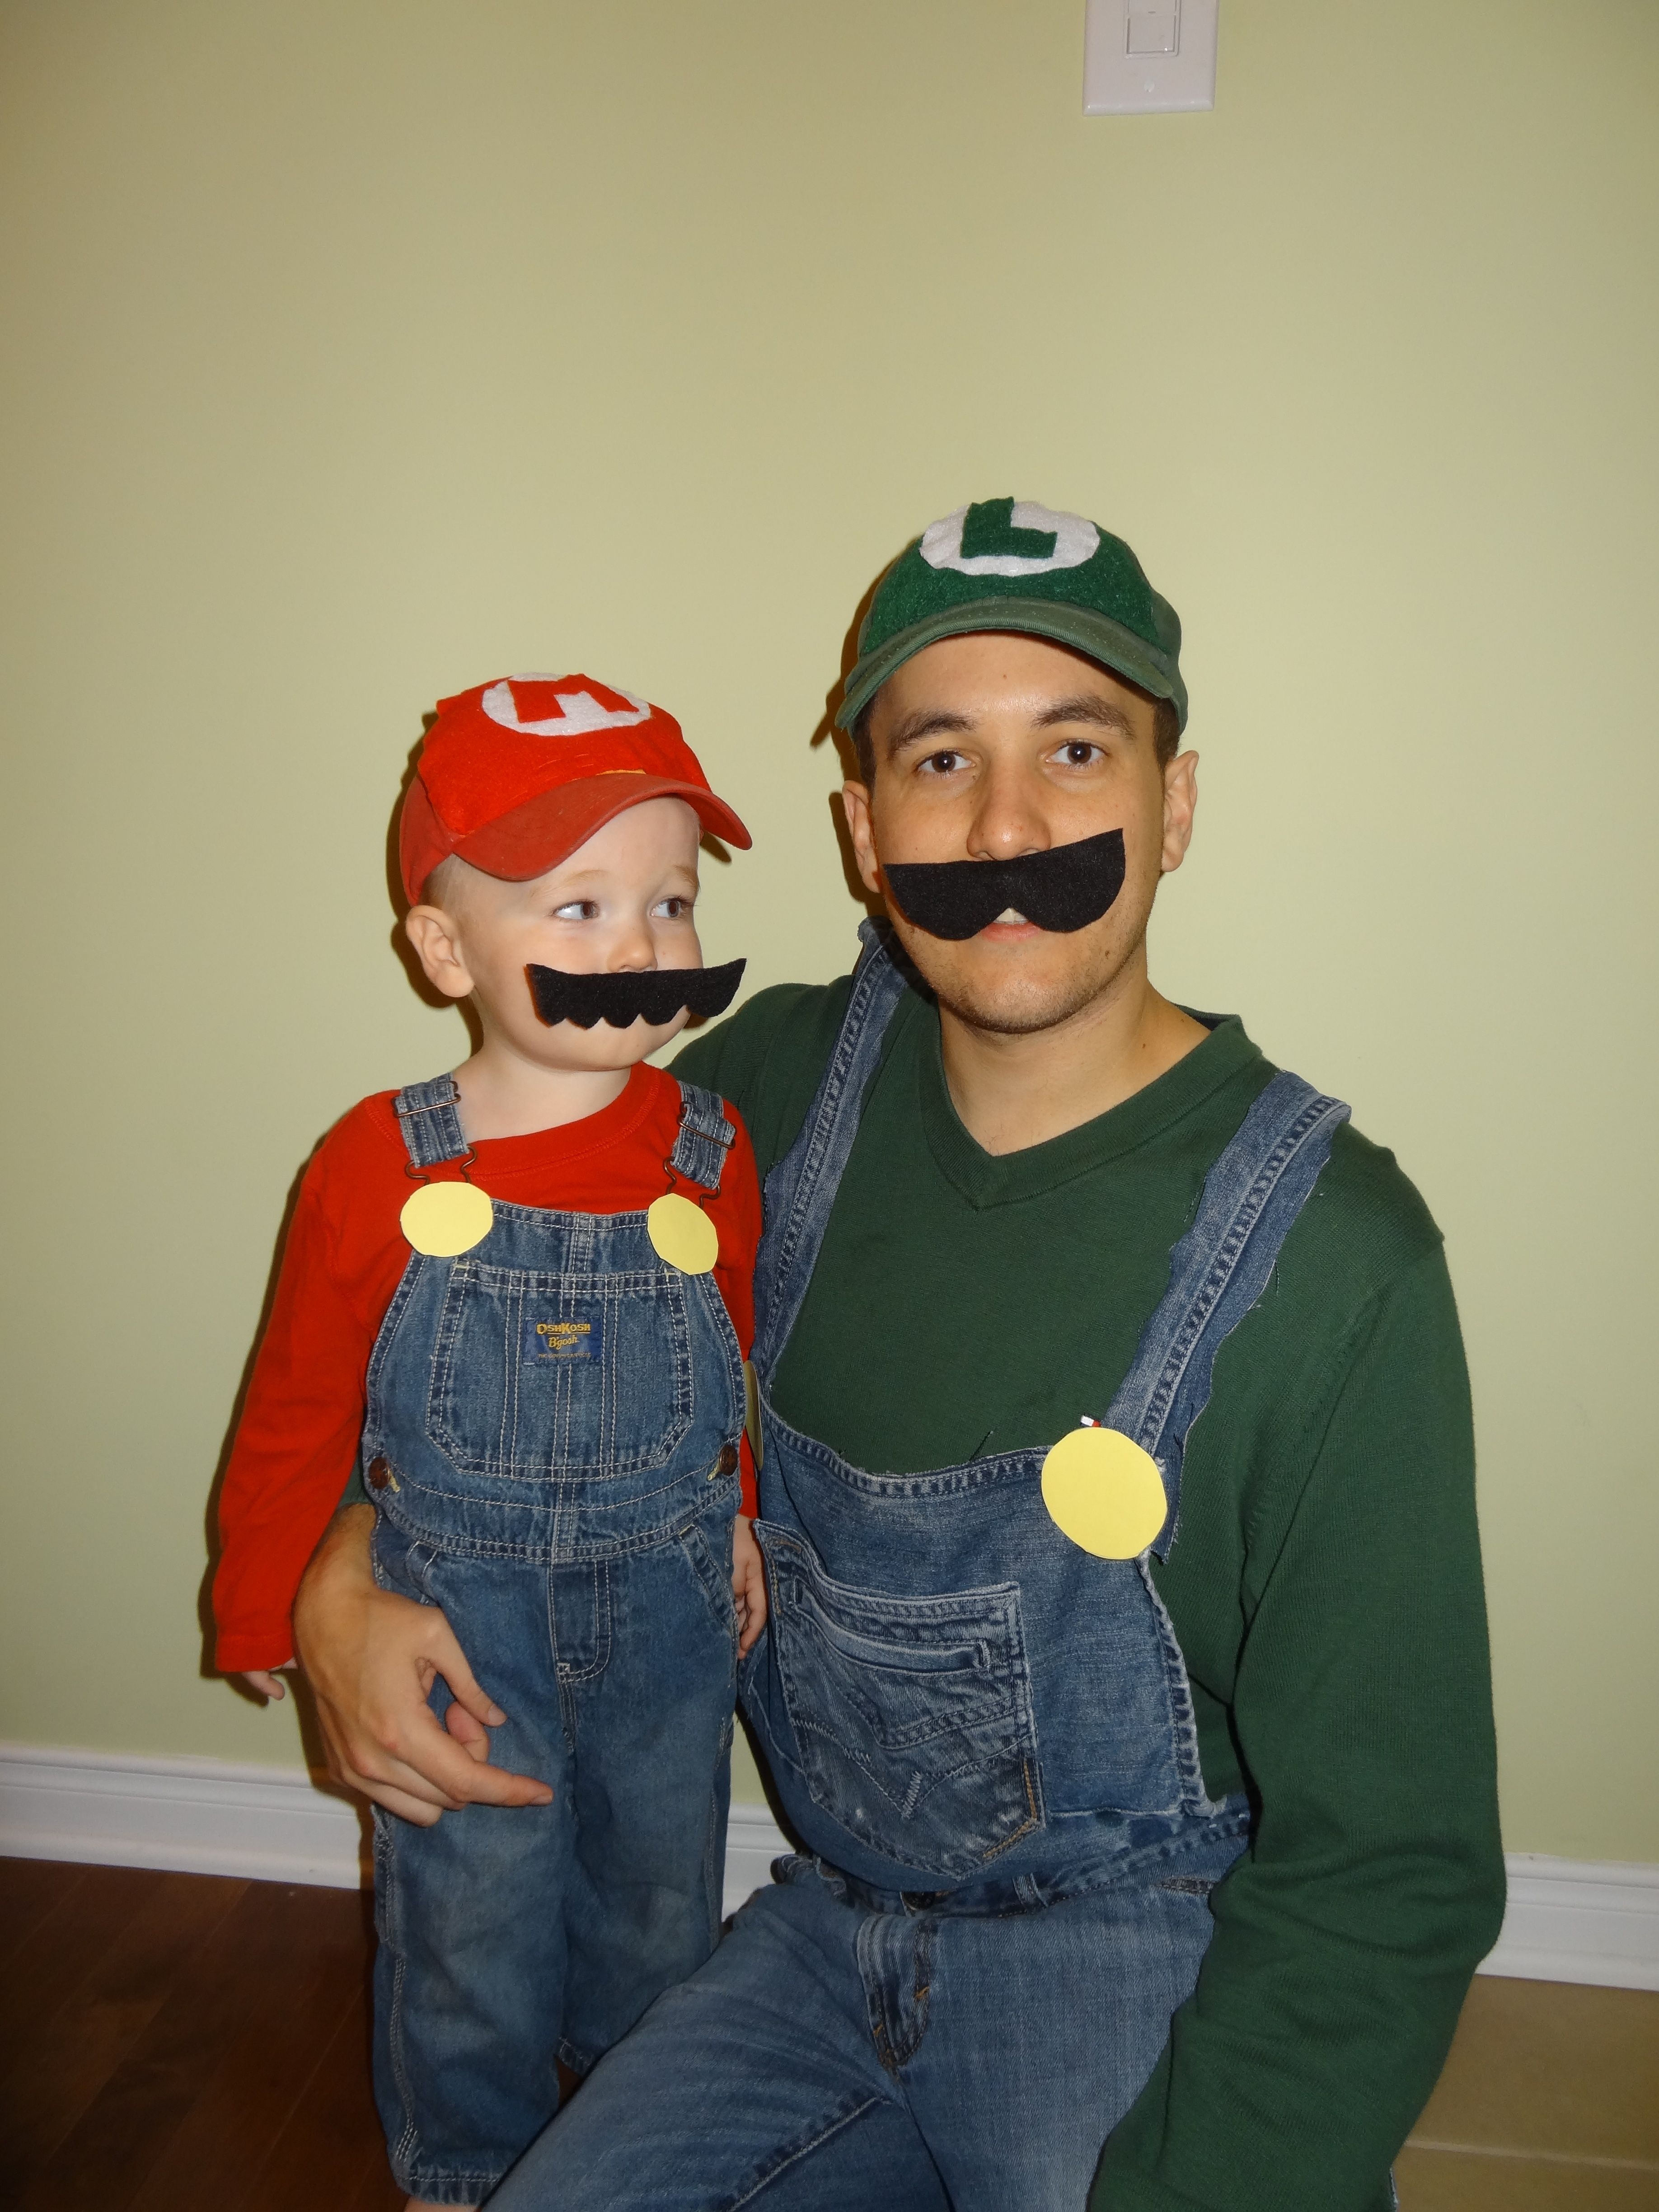 mario and luigi. father and son costume. 2 year old boy costume